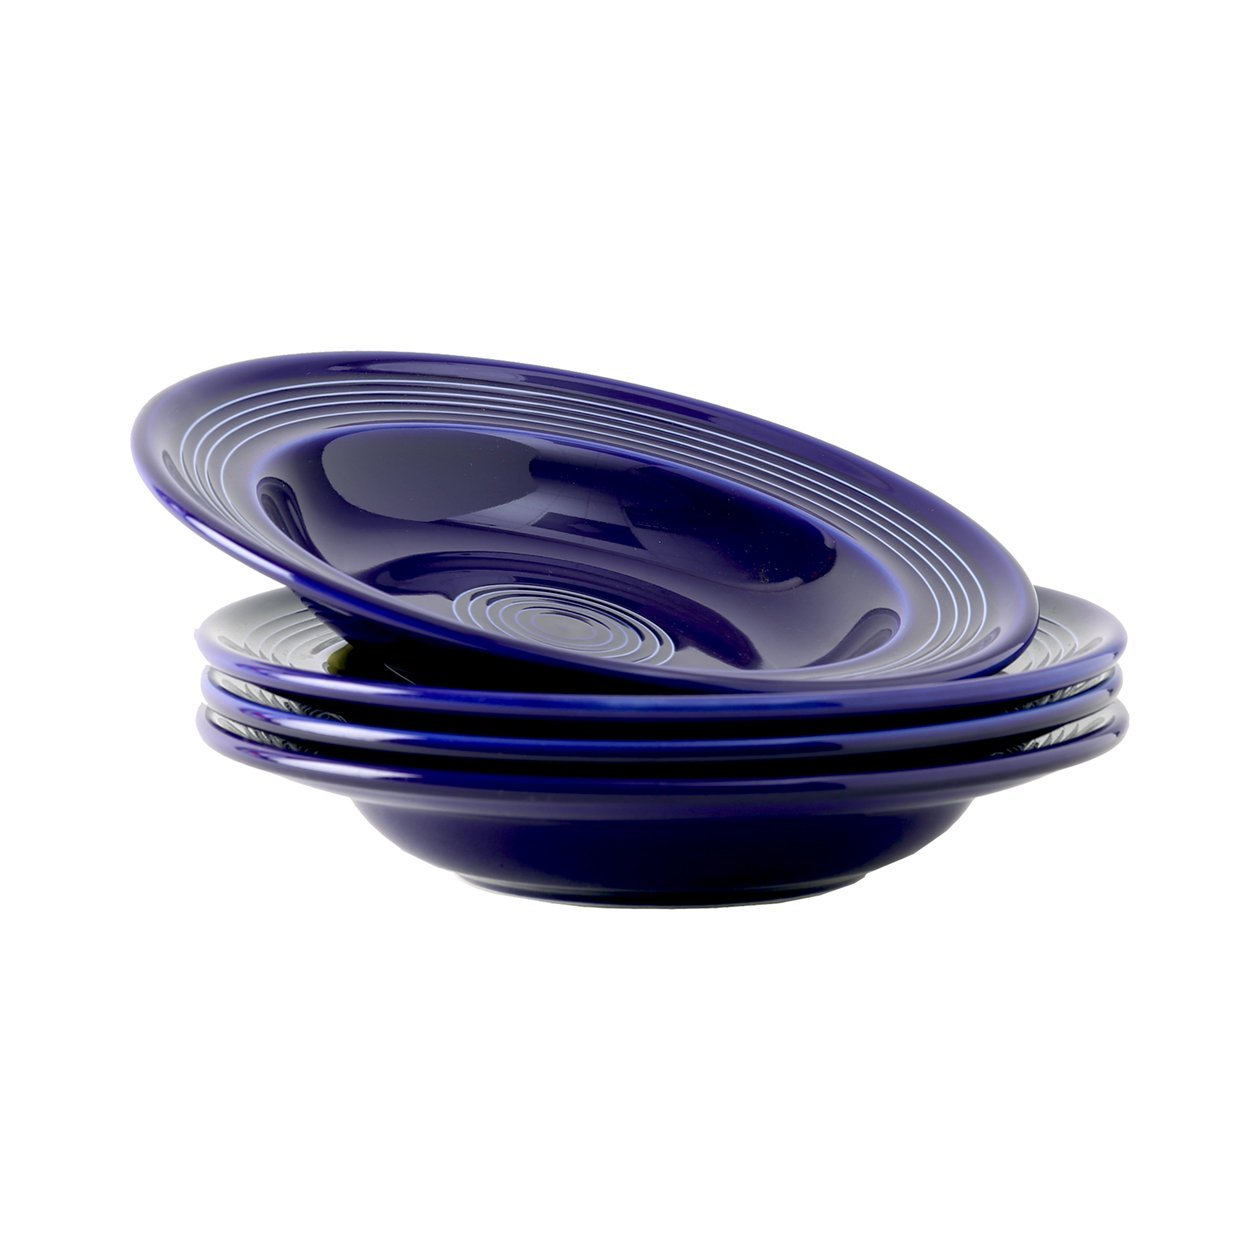 Tuxton Home Concentrix Rim Soup Bowl (Set of 4), 9'' (12 oz), Cobalt Blue; Heavy Duty; Chip Resistant; Lead and Cadmium Free; Freezer to Oven Safe up to 500F